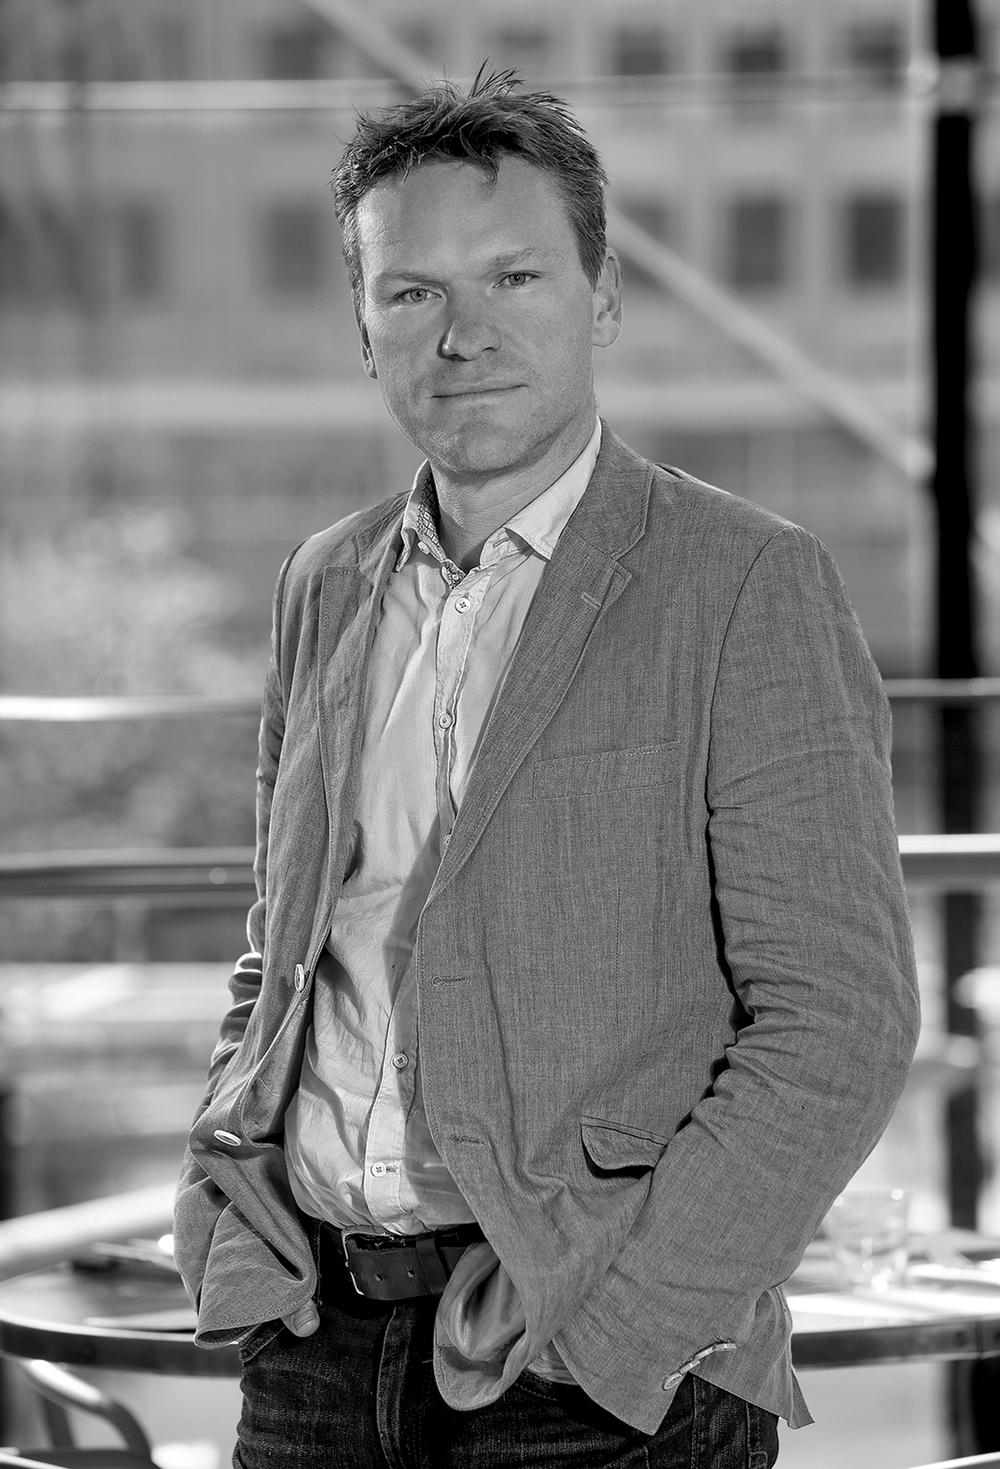 Waggett, a former CEO of Fitness First UK, joined Third Space in 2015